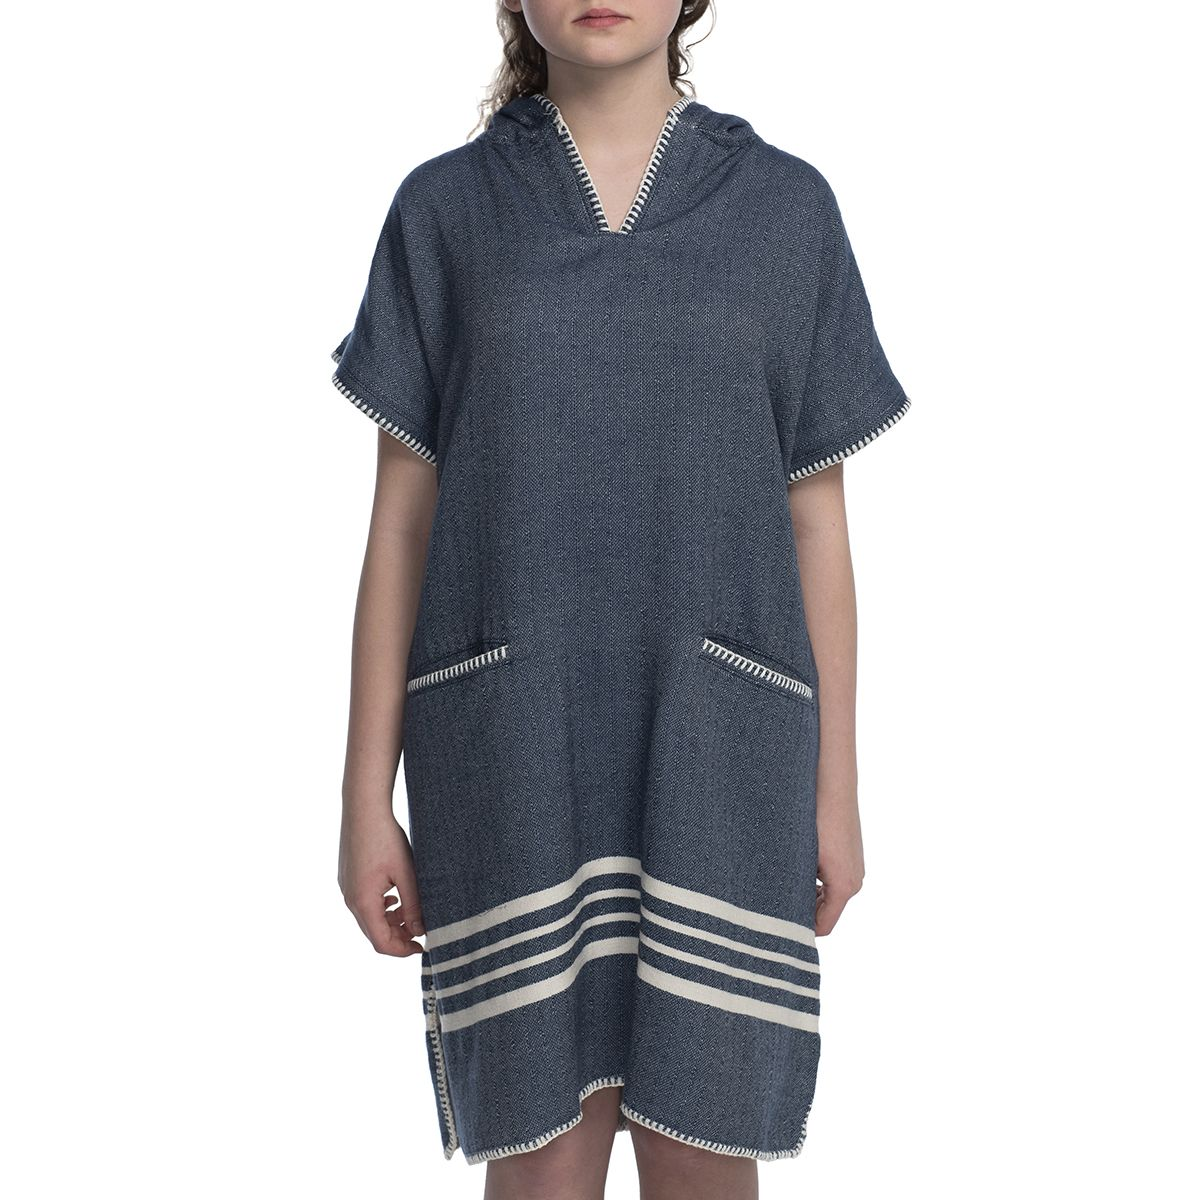 Adult Poncho - Sultan / Navy